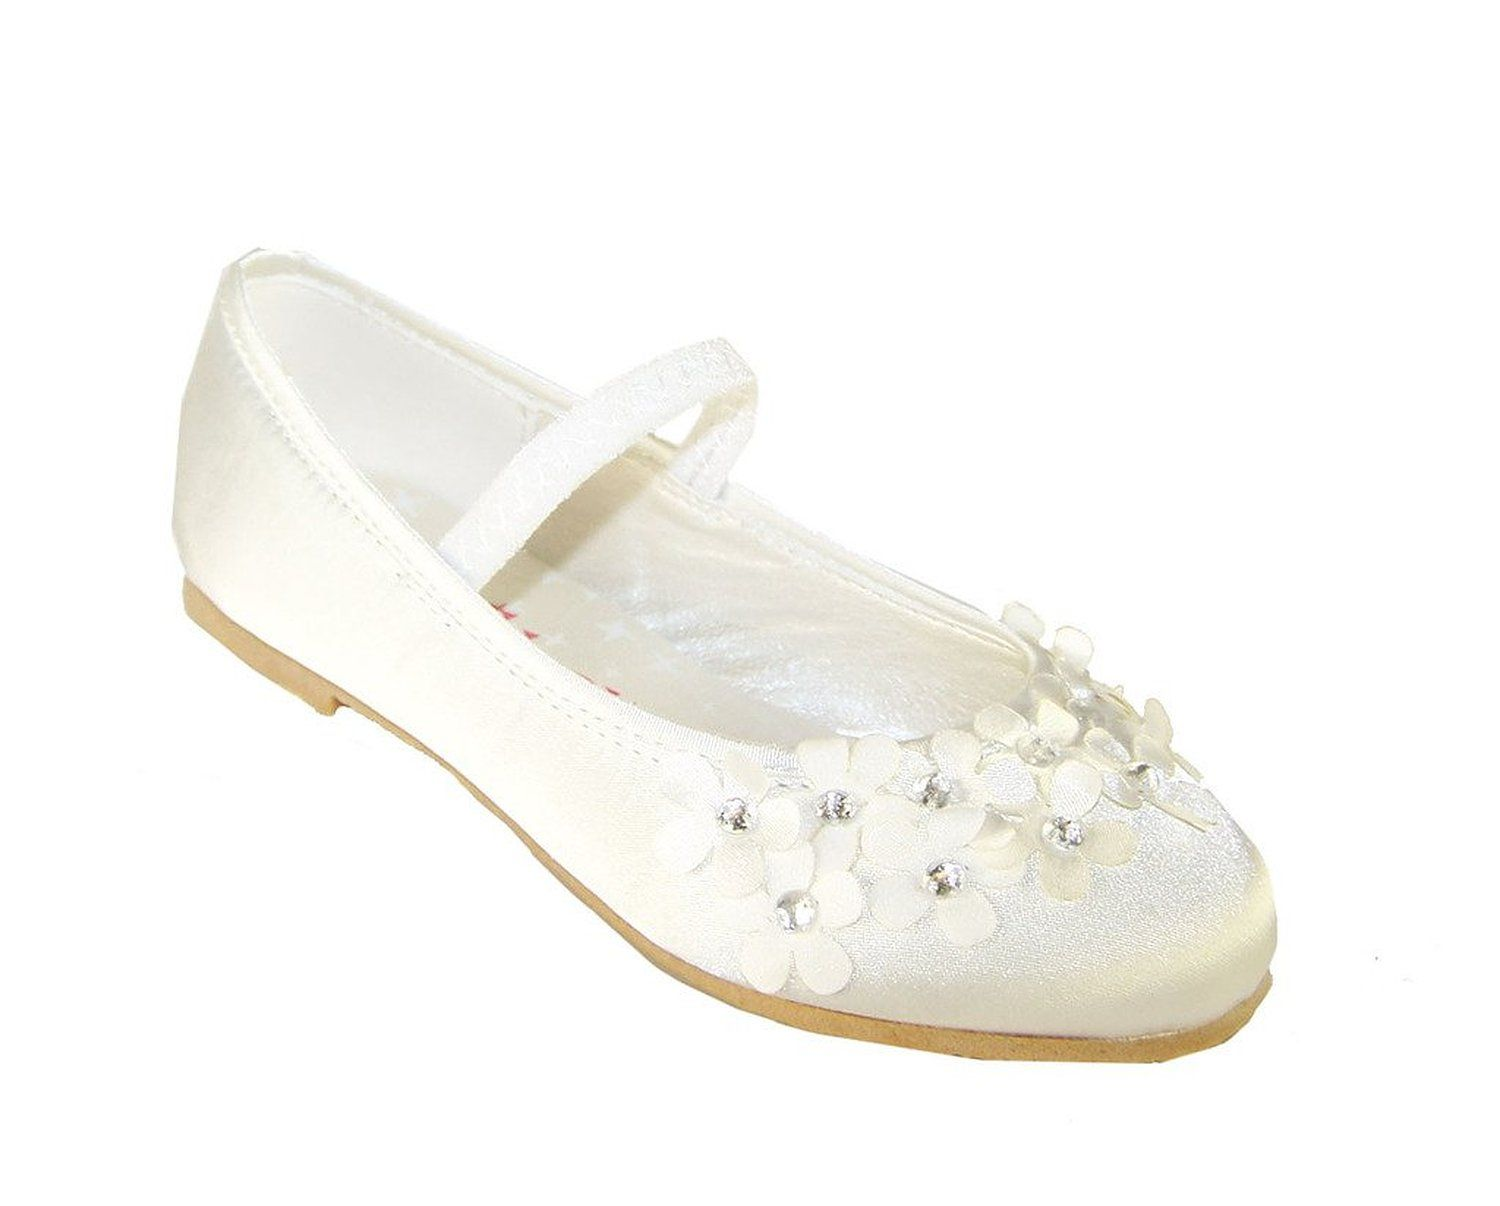 e4e514d82535 Amazon.com  Sparkle Club Girls  Ivory Flower Girl and Bridesmaid shoes with  flowers and gems Satin Ballet-Flats  Clothing